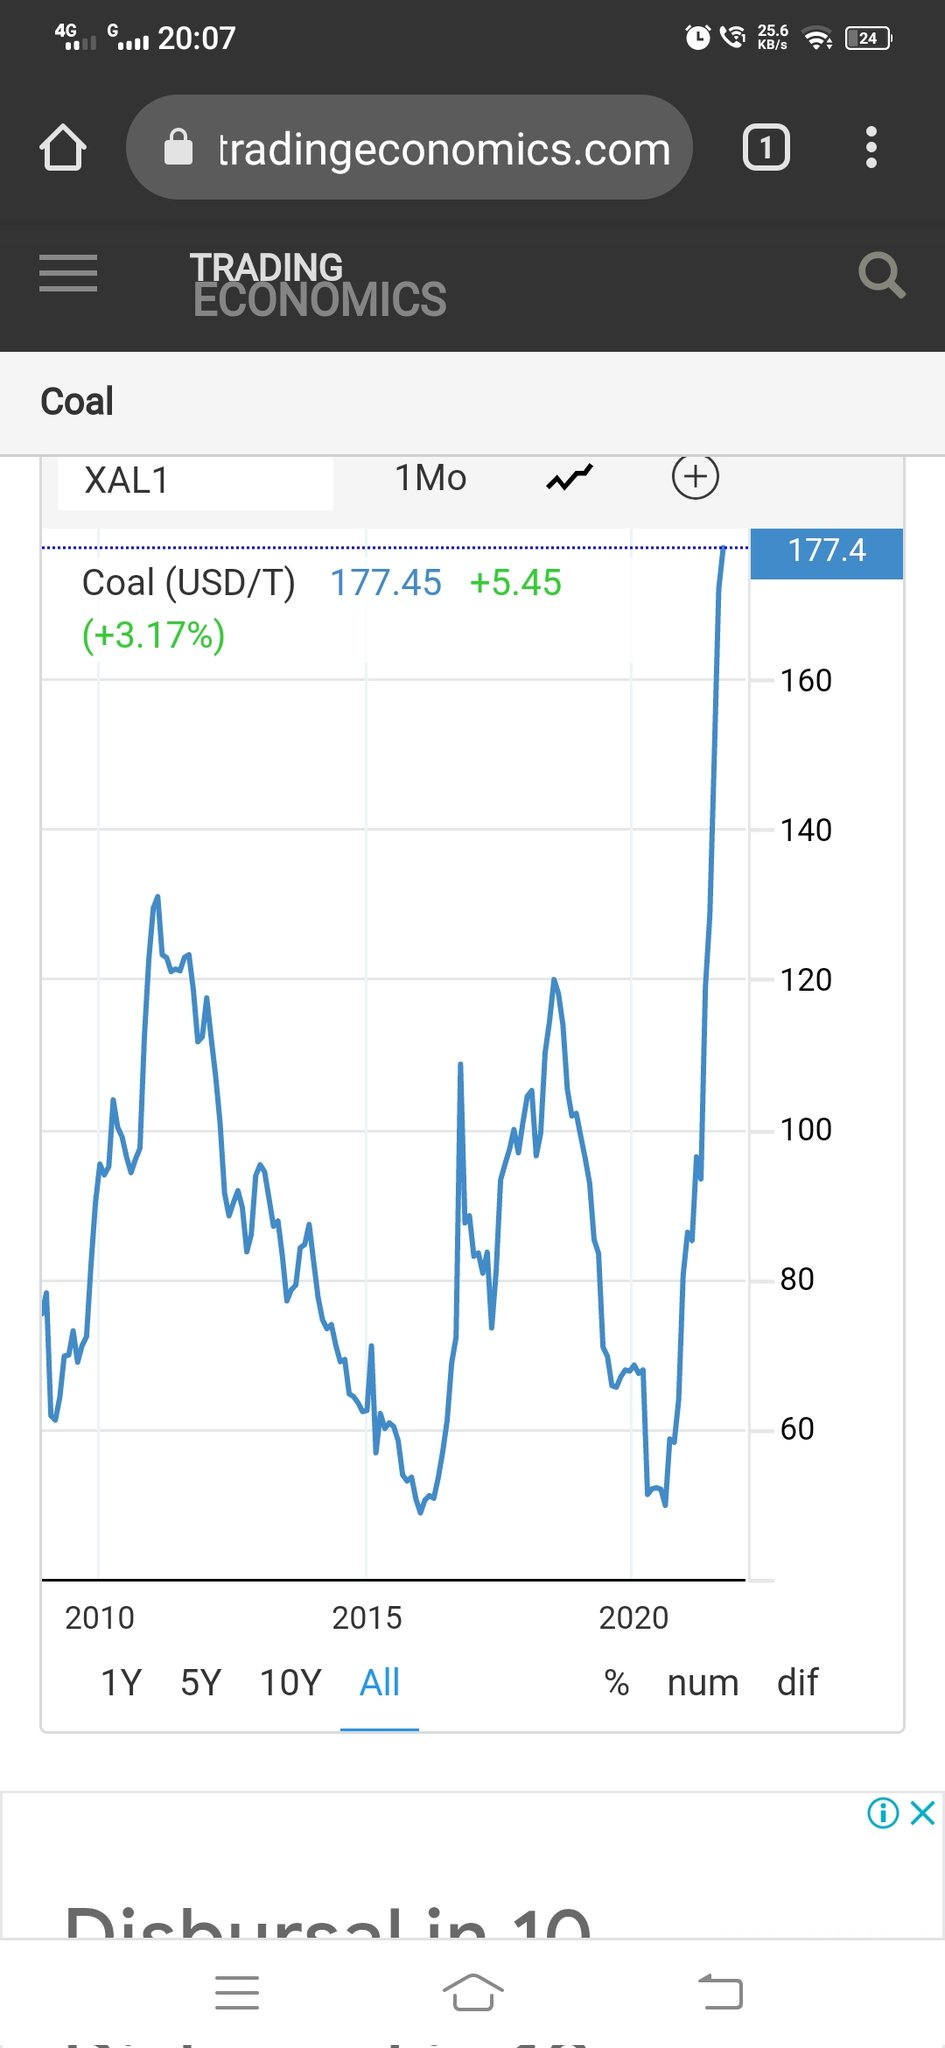 Coal India plans to increase prices slowly